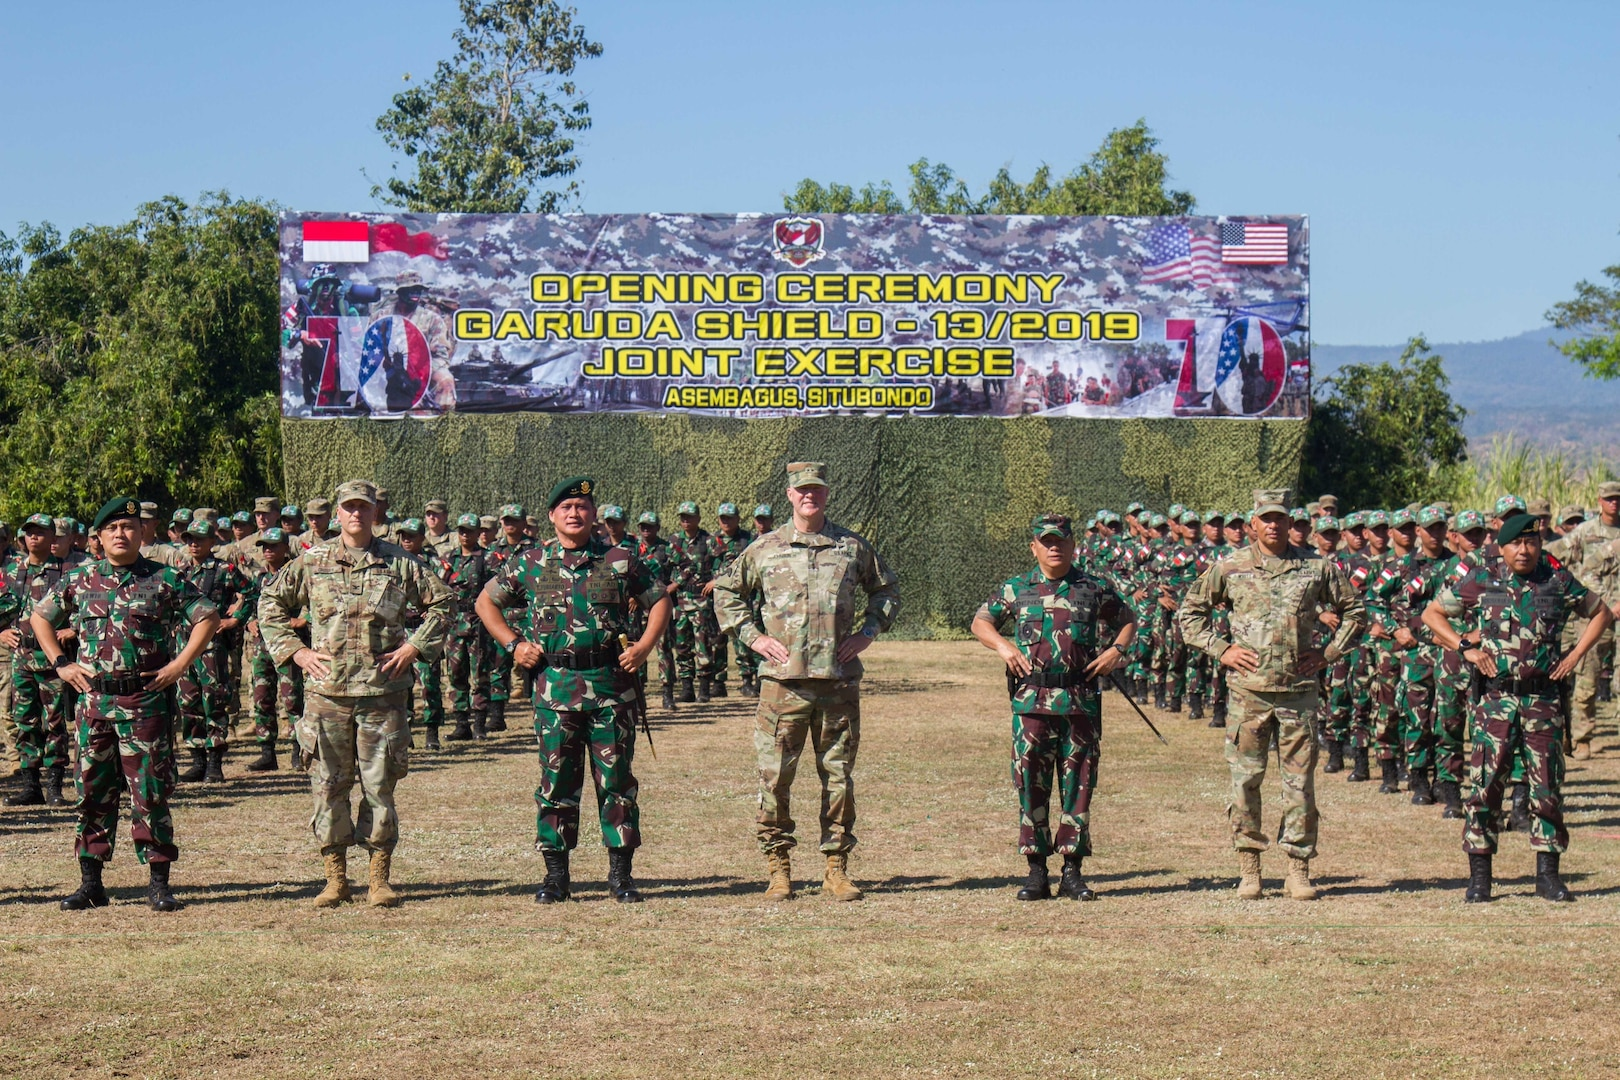 The 2019 Garuda Shield leaders from both armies pose for a picture with a formation of U.S. and Indonesian forces during the 2019 Garuda Shield opening ceremony Aug. 19, 2019, at Dodiklatpur, Indonesia. Garuda Shield is an annual, bilateral military partnership sponsored by the U.S. Army Pacific and hosted annually by Tentara Nasional Indonesia. (U.S. Army photo by Pfc. Ezra Camarena, 28th Public Affairs Detachment)